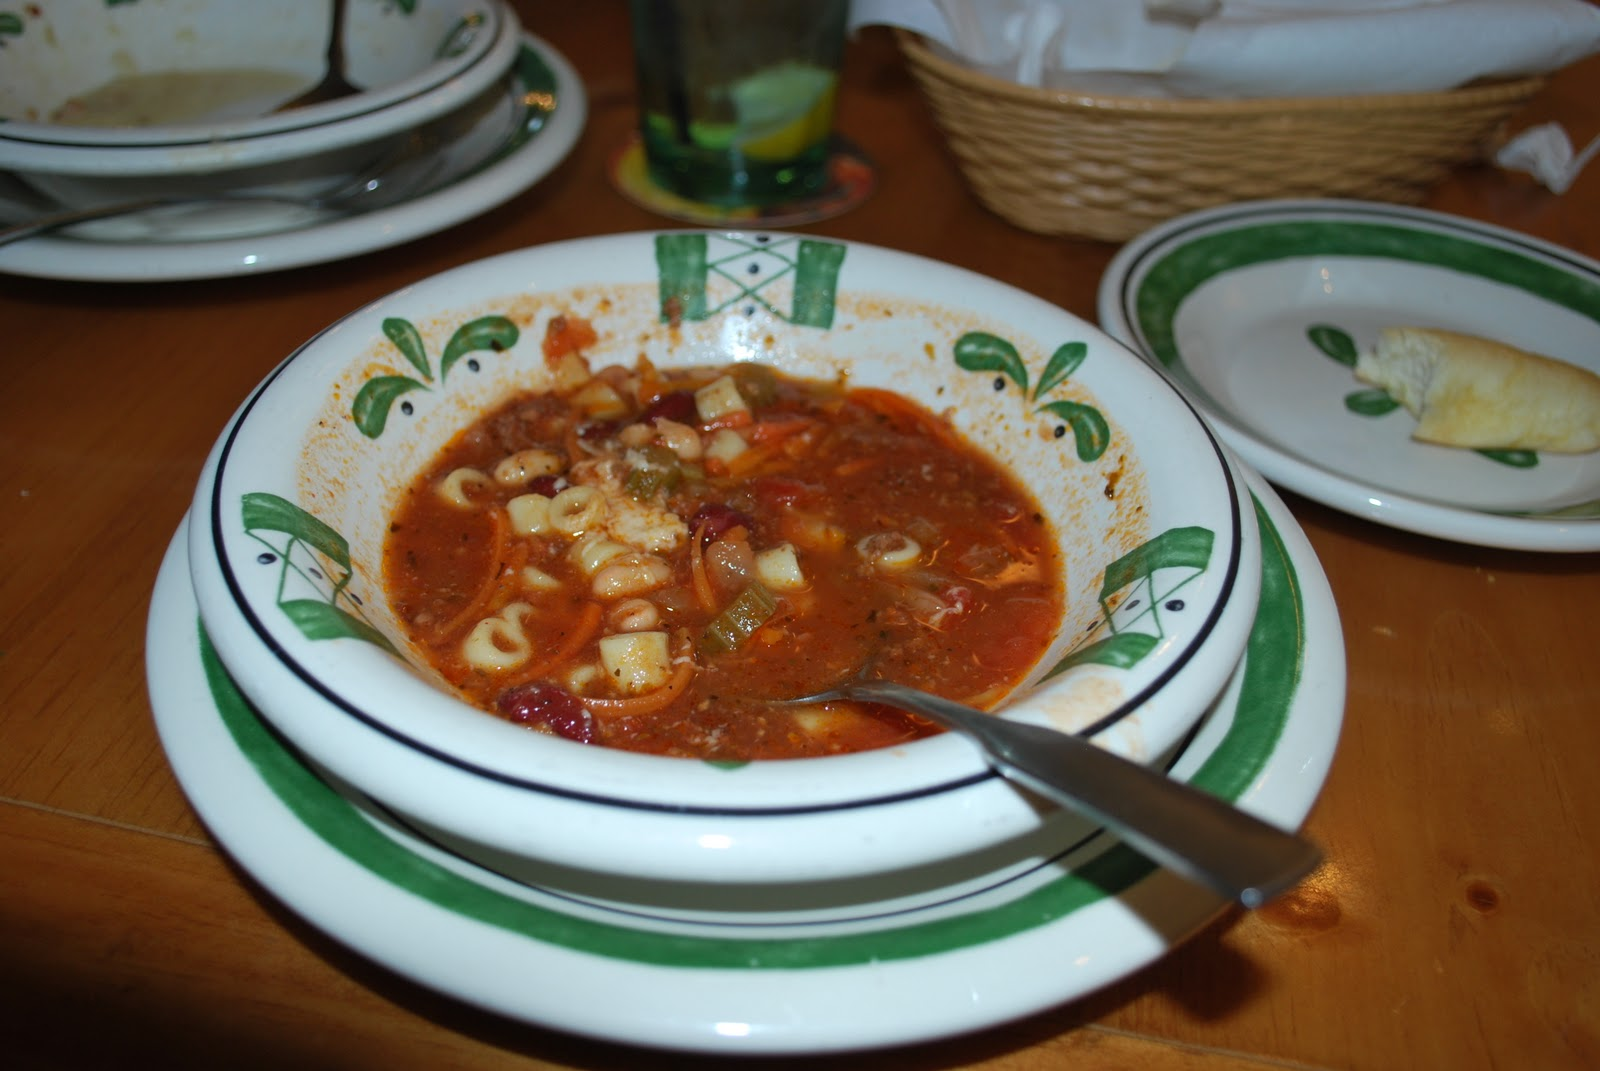 Stupendous soups are on the menu at Olive Garden